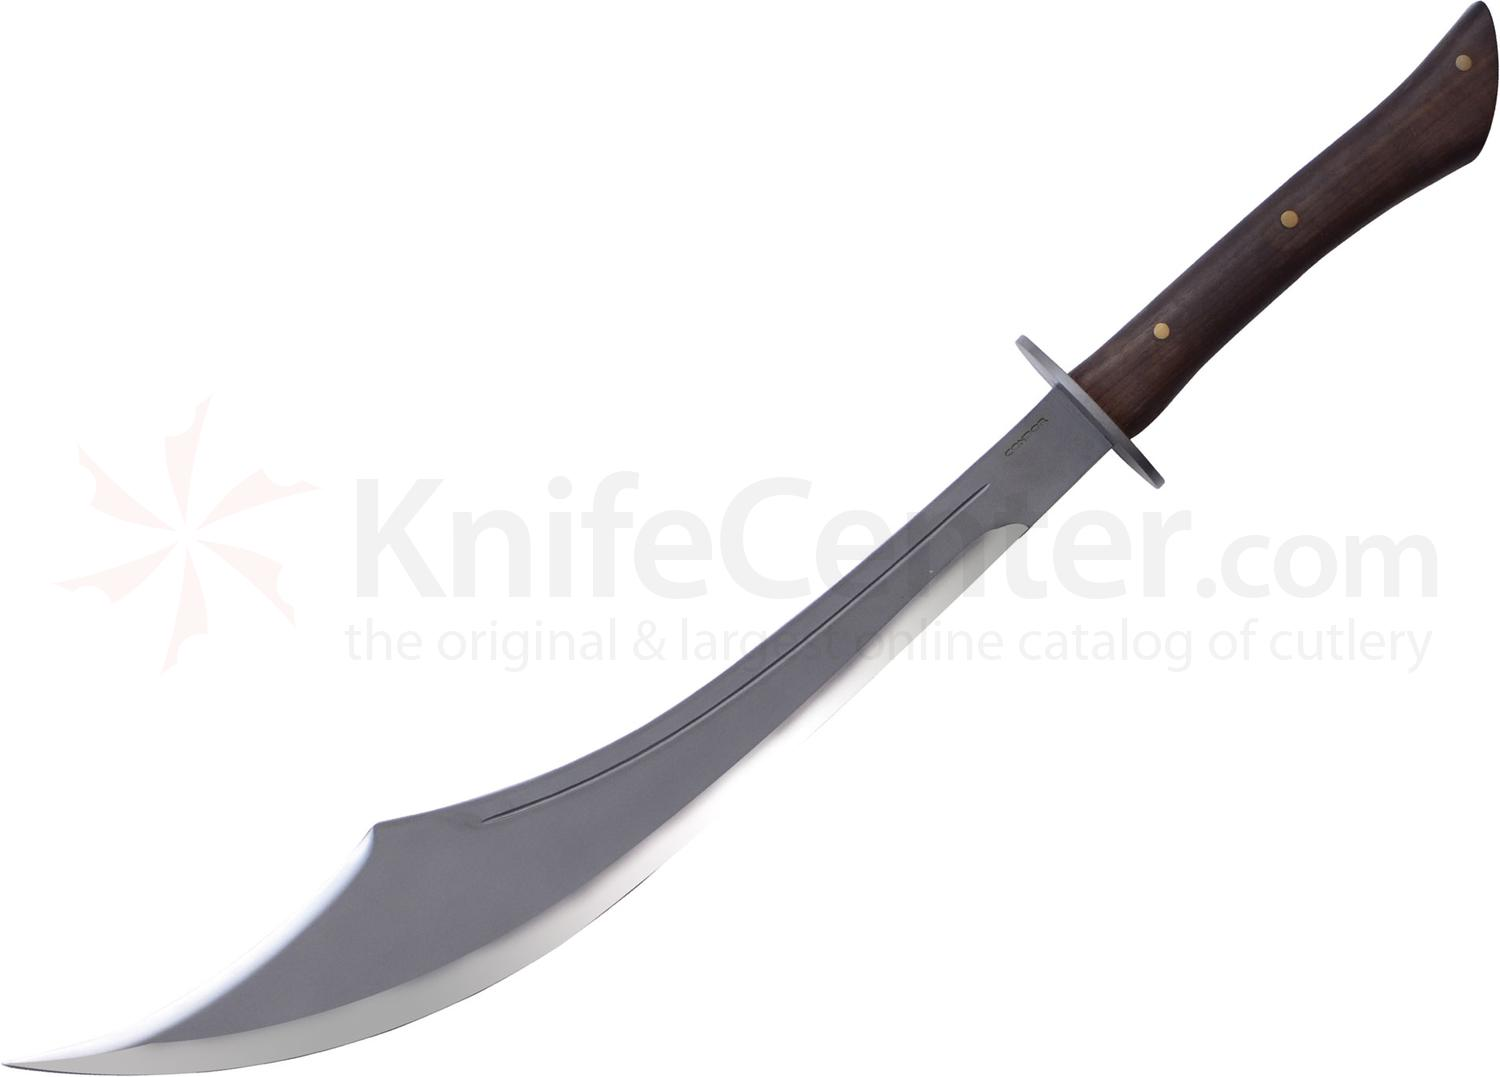 Condor Tool & Knife CTK357-22HC Sinbad Scimitar Sword 22 inch Carbon Steel Blade, Hardwood Handles, Leather Sheath